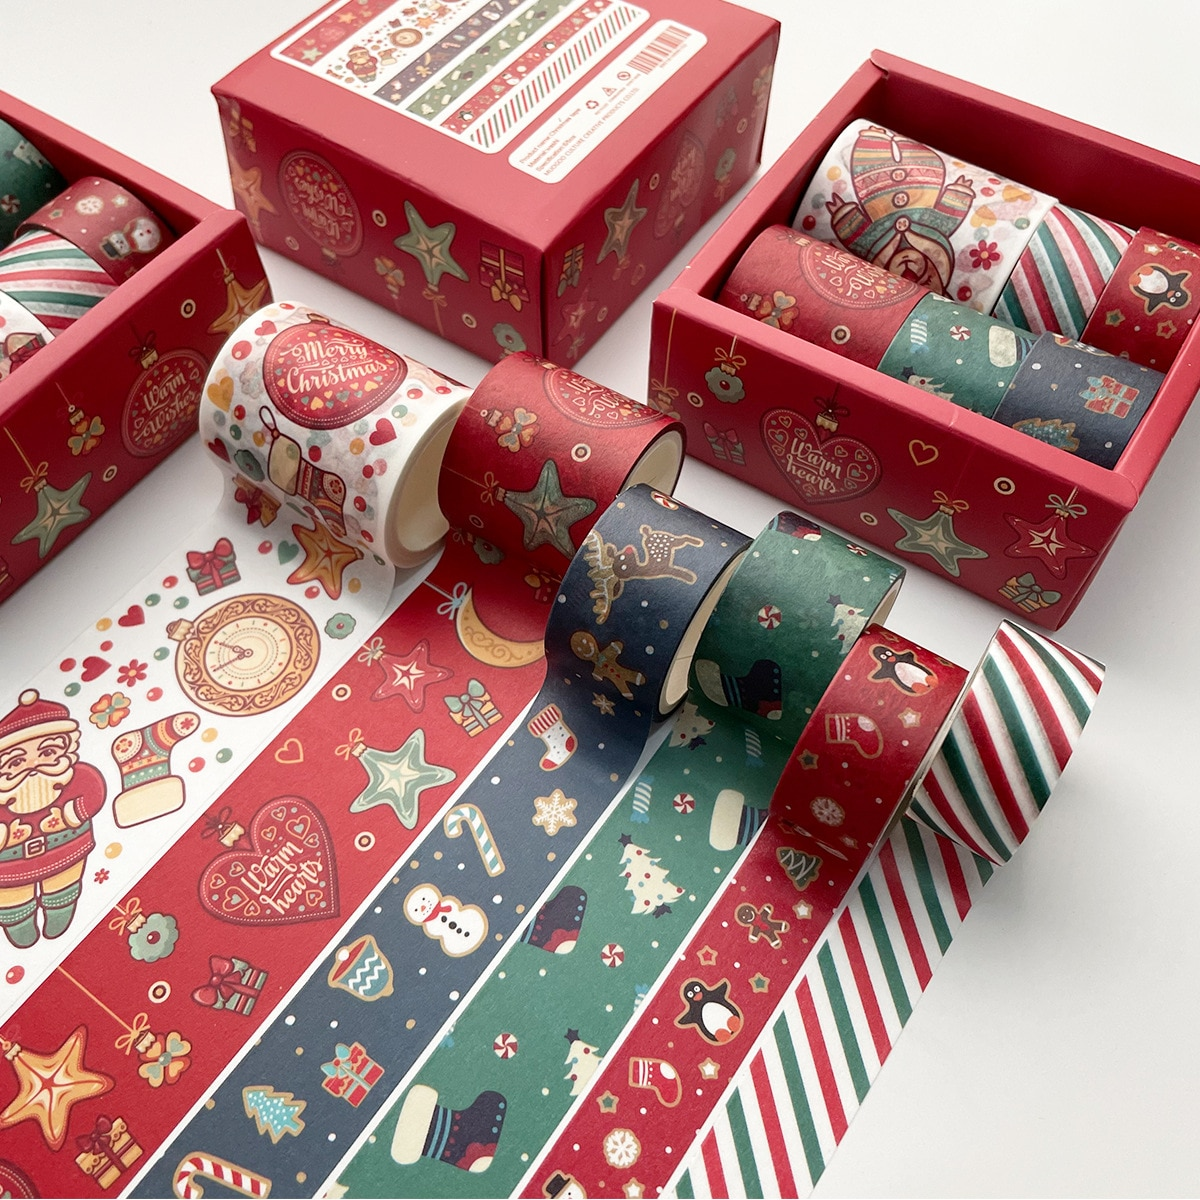 Christmas Washi Tape 6 Rolls Xmas Tape Collection For Holiday Decorations Gifts Wrapping And Present Scrapbooking Arts Crafts